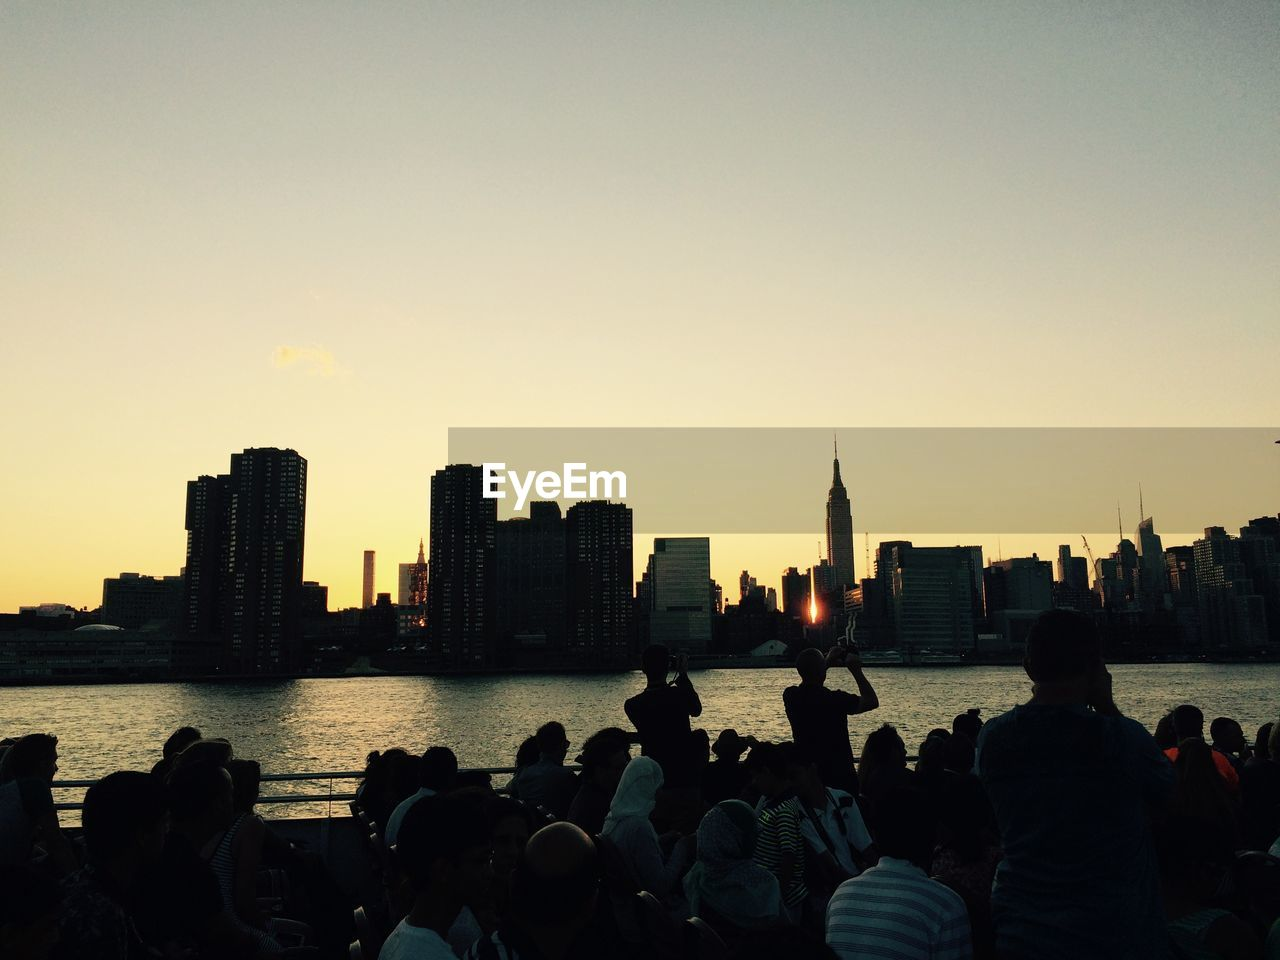 Crowd by river against clear sky in city at dusk